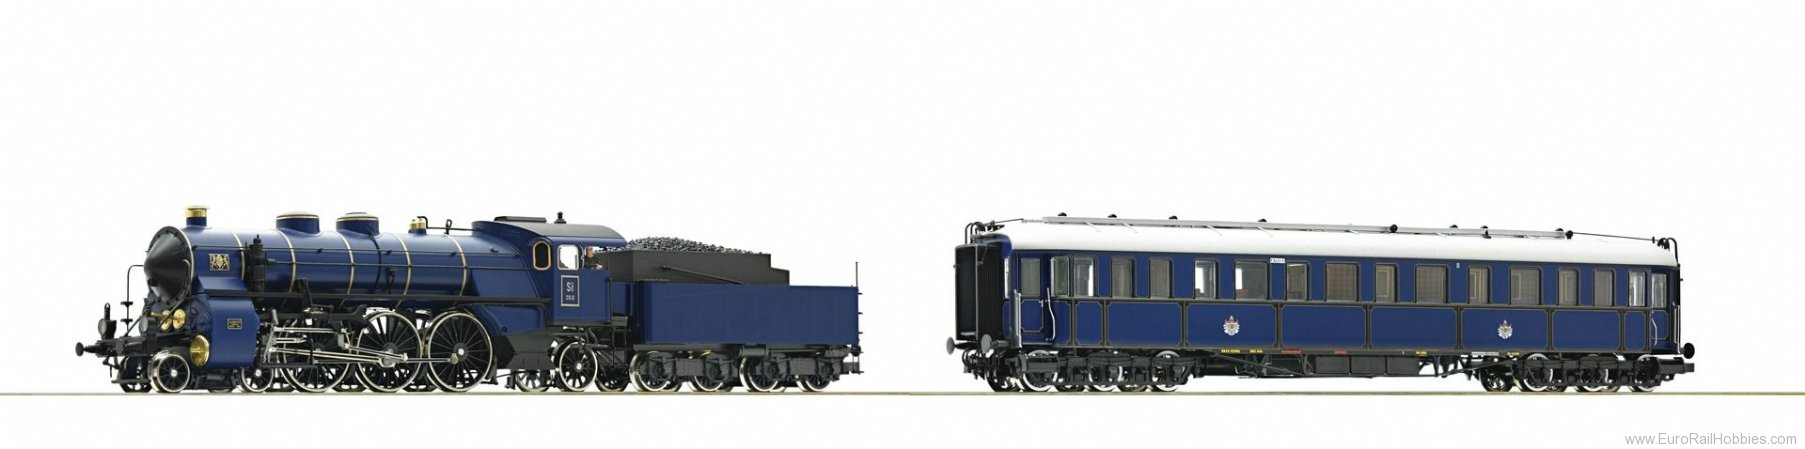 Roco 61473 2 piece set: Steam locomotive S 3/6 and Prinz